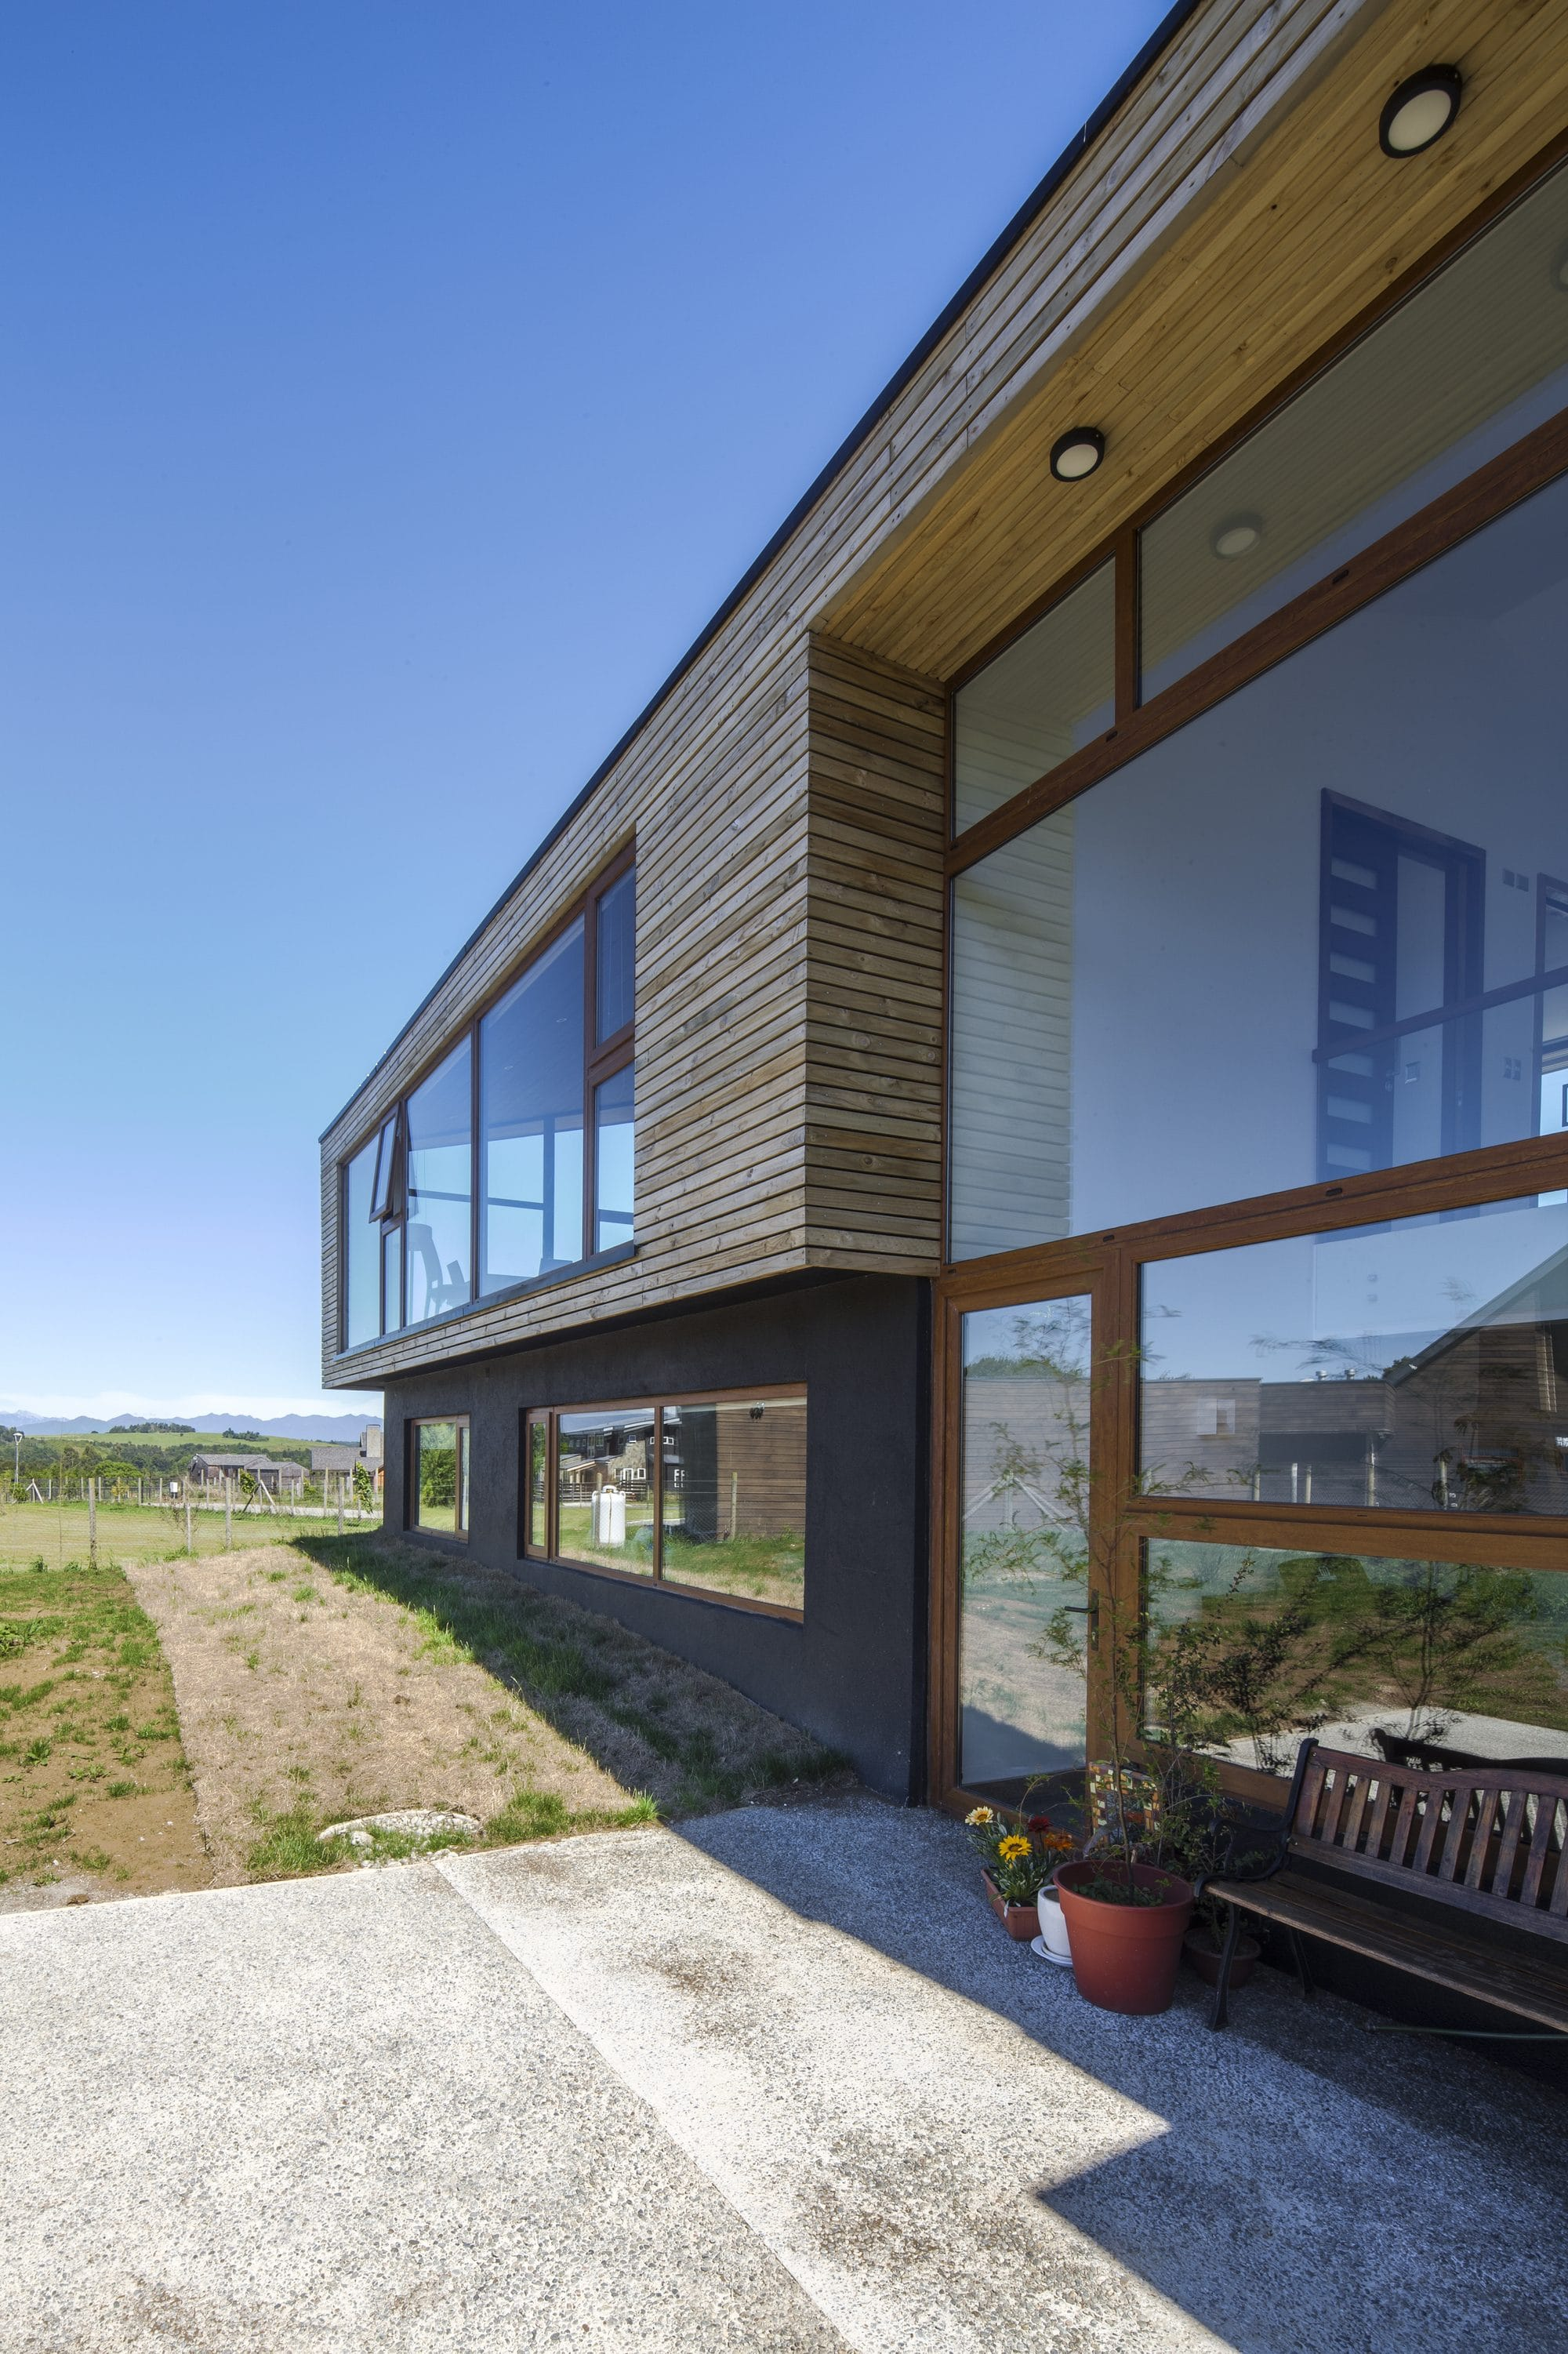 Семейный дом VF House в Чили от бюро AM Arquitectura, HQ architecture, HQarch, HQ arch, high quality architecture